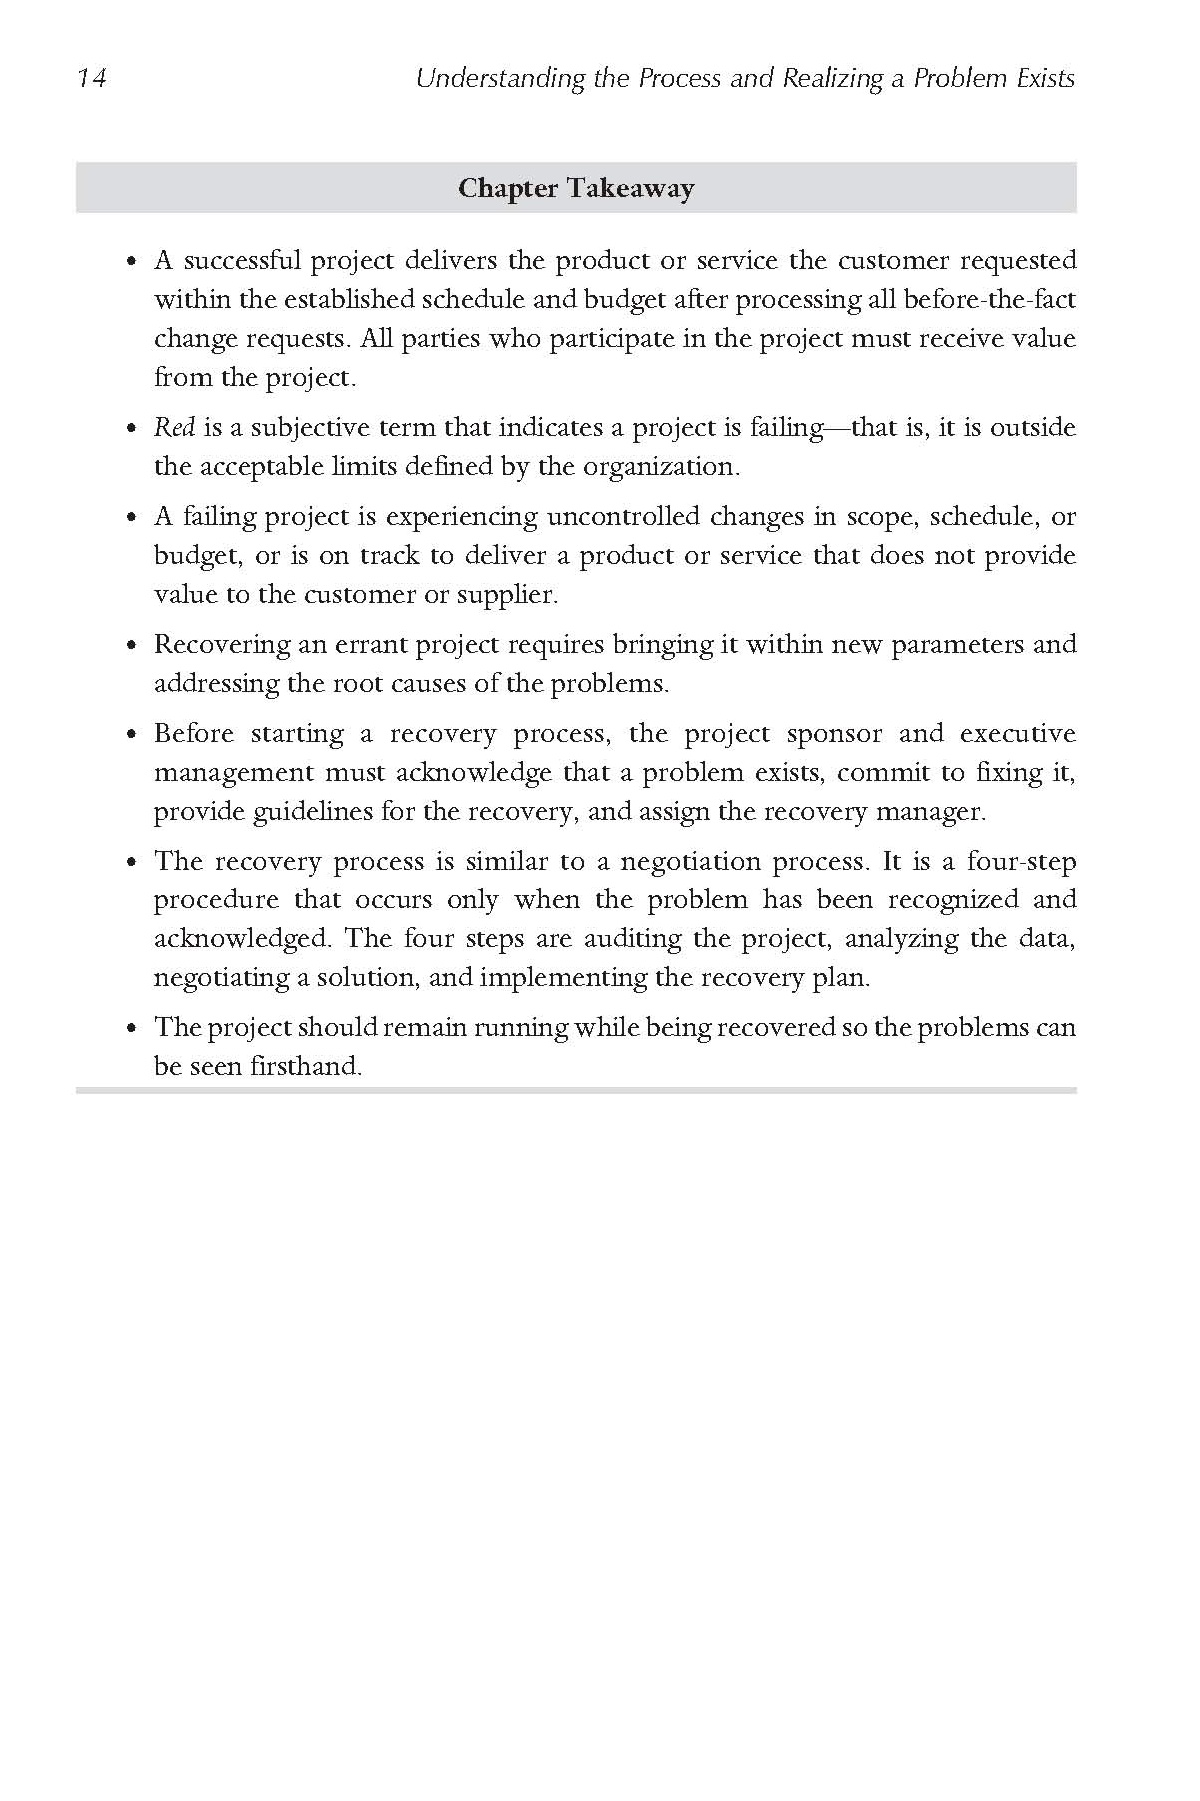 Rescue the Problem Project page 14